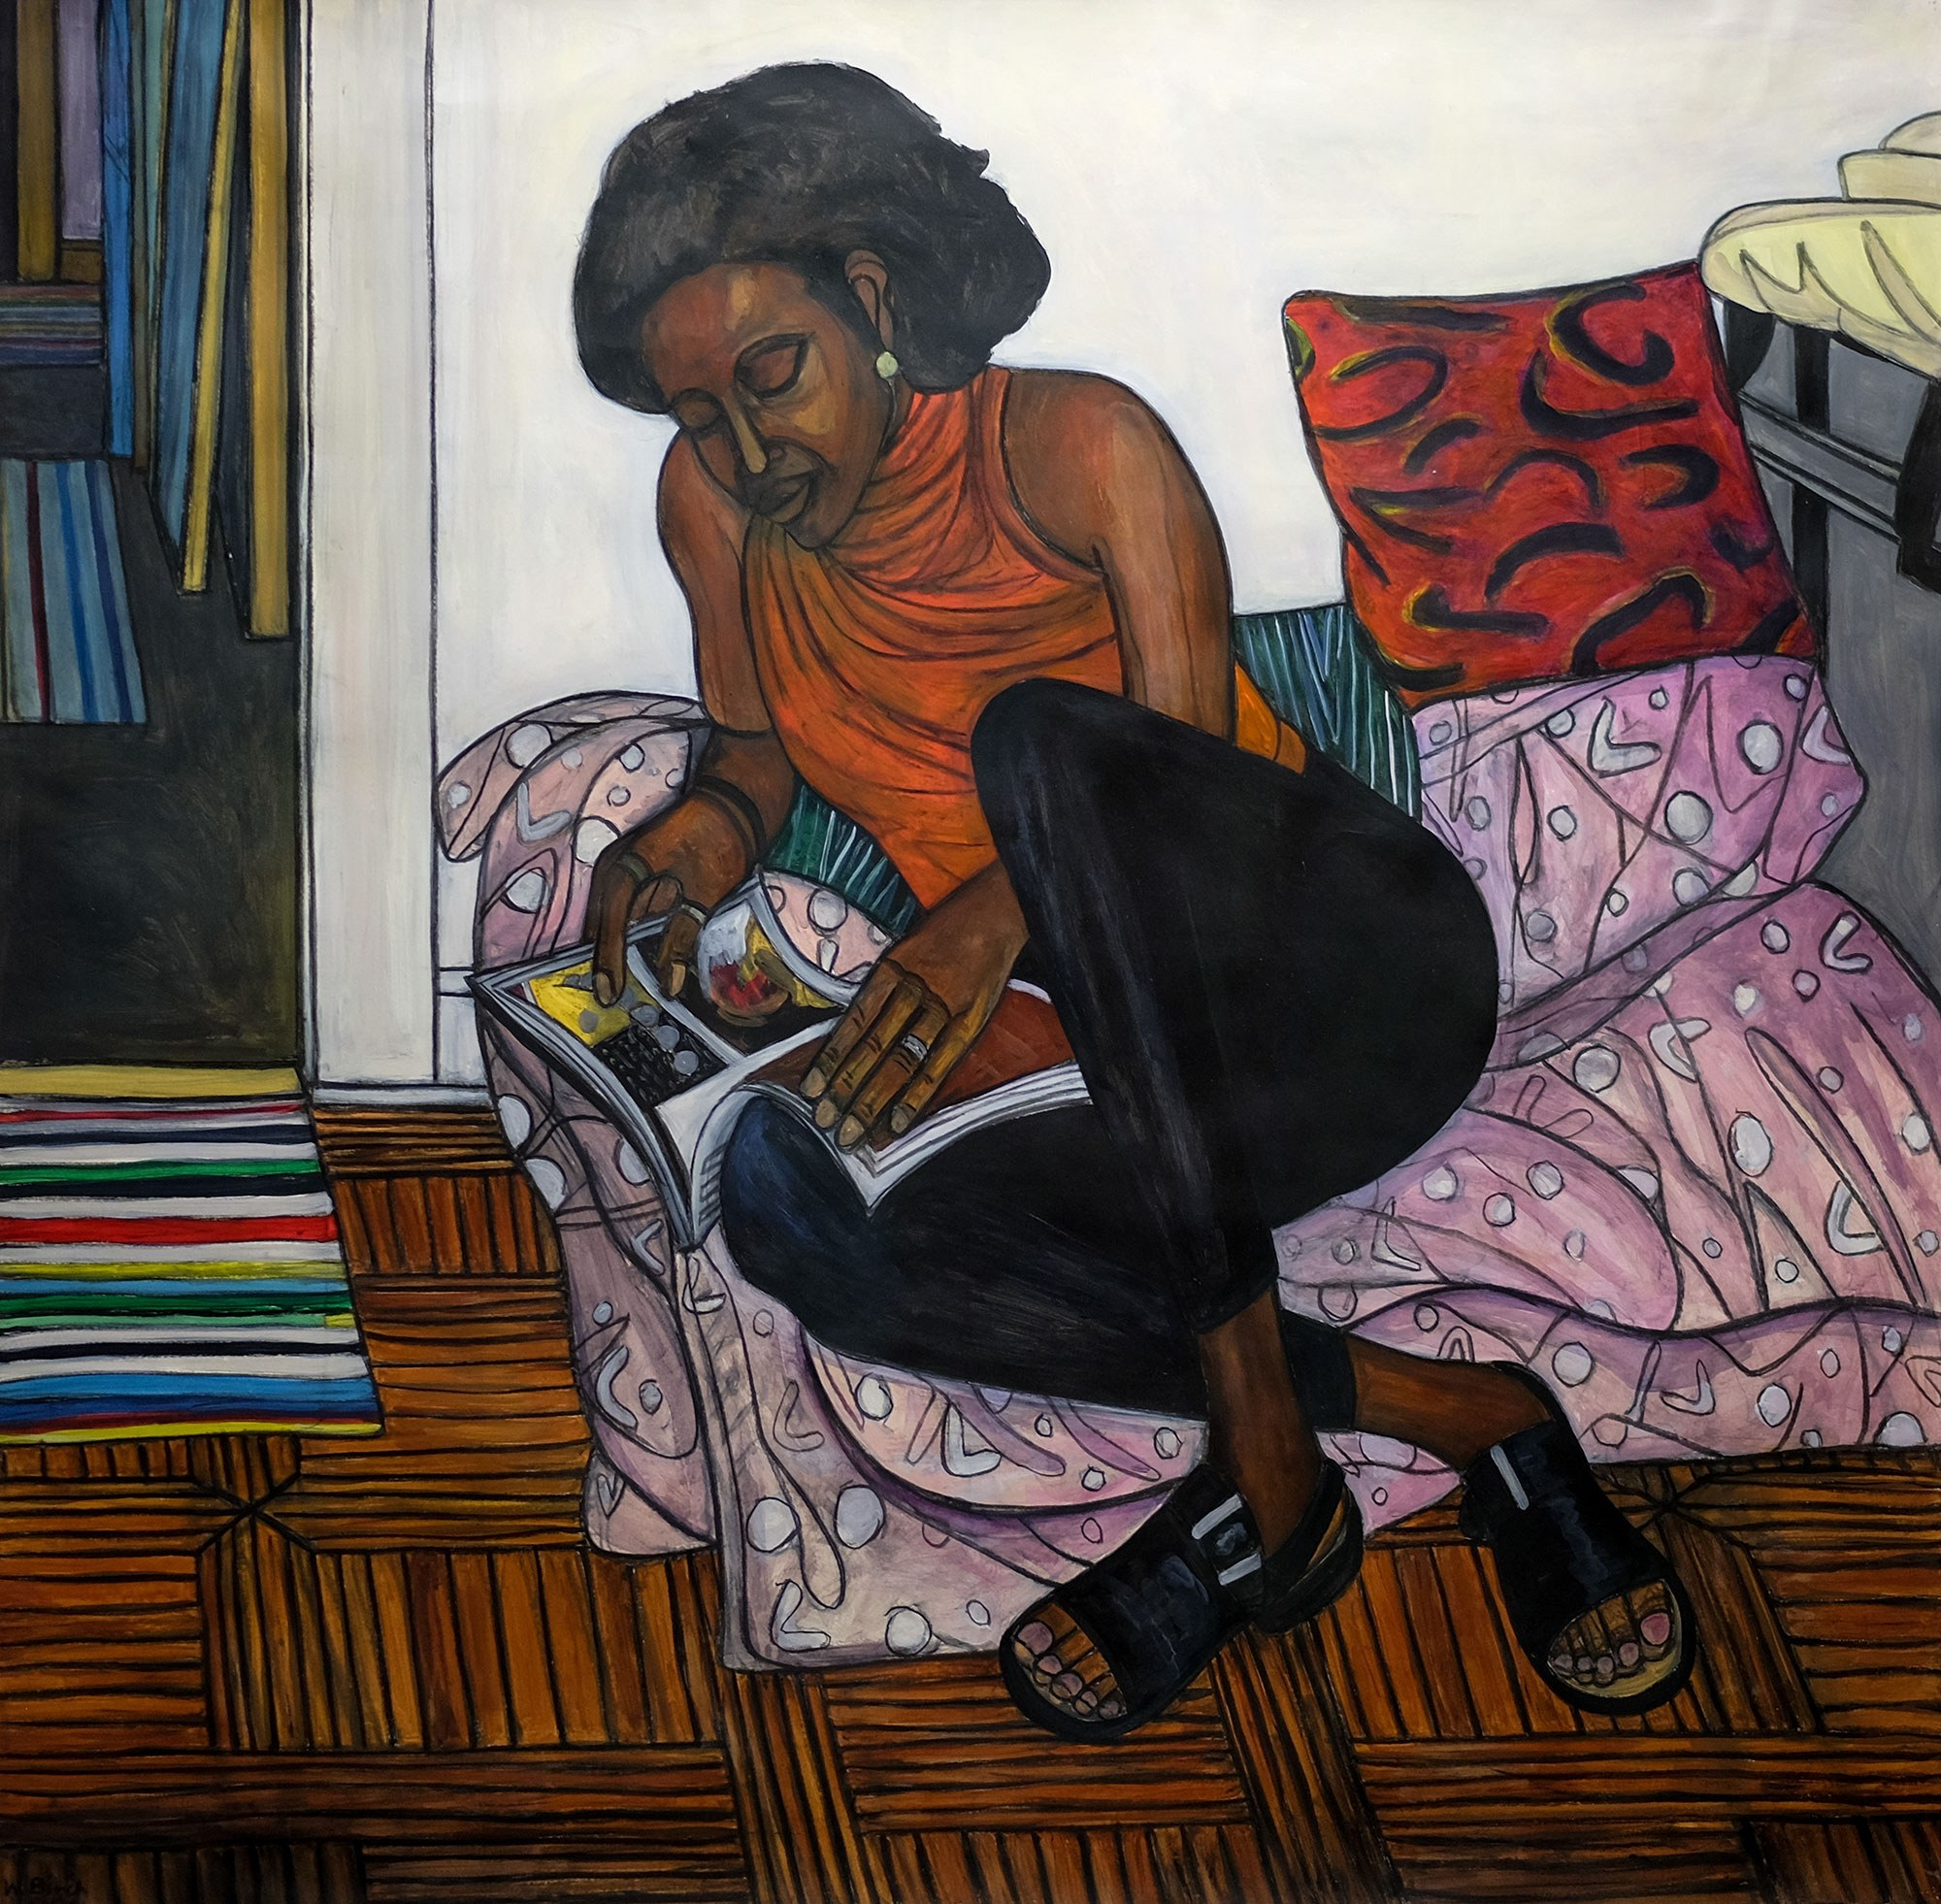 Willie Birch, American, b. 1942. Woman Reading Magazine, 1999. Acrylic and charcoal on paper, 59 x 60 in. Gift of Genevieve and Richard Shaw, by exchange, 2011.1